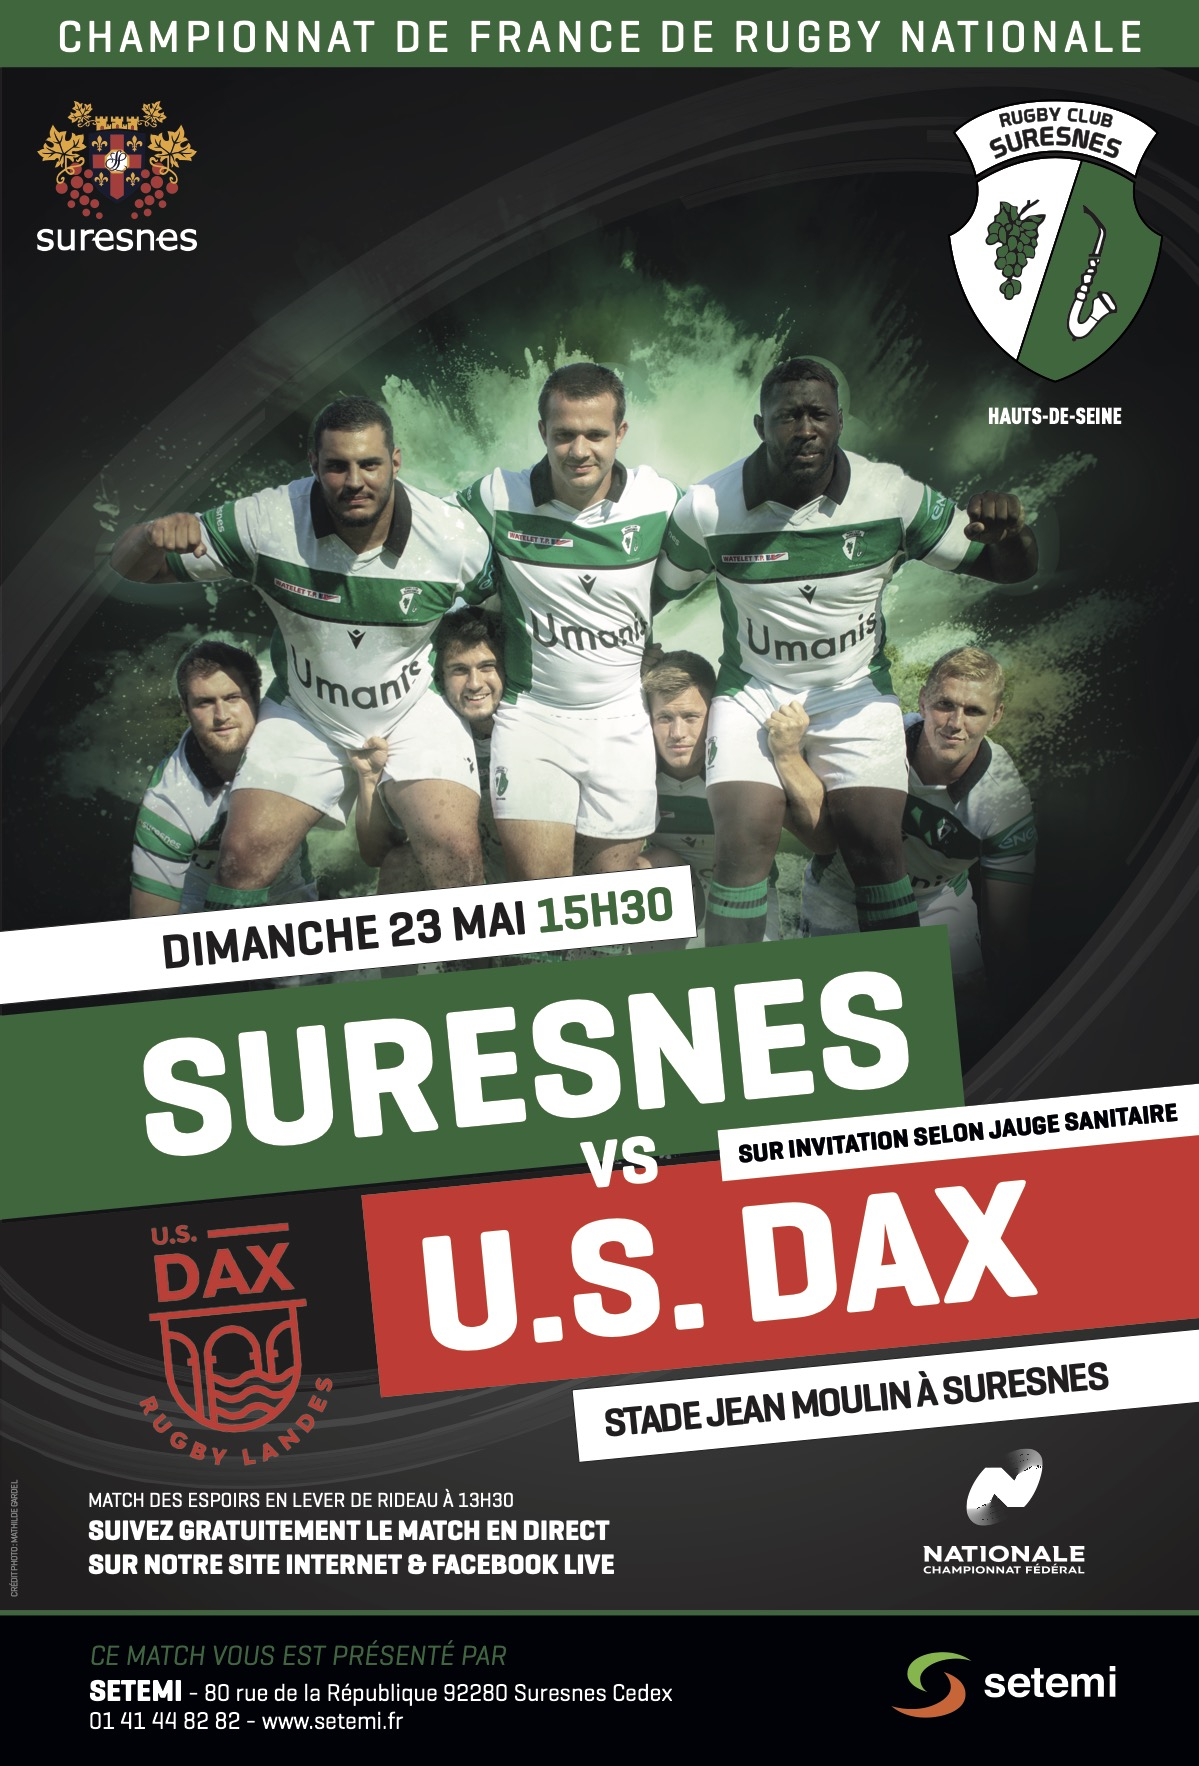 AFFICHE-RUGBY-Nationale-rcs-dax